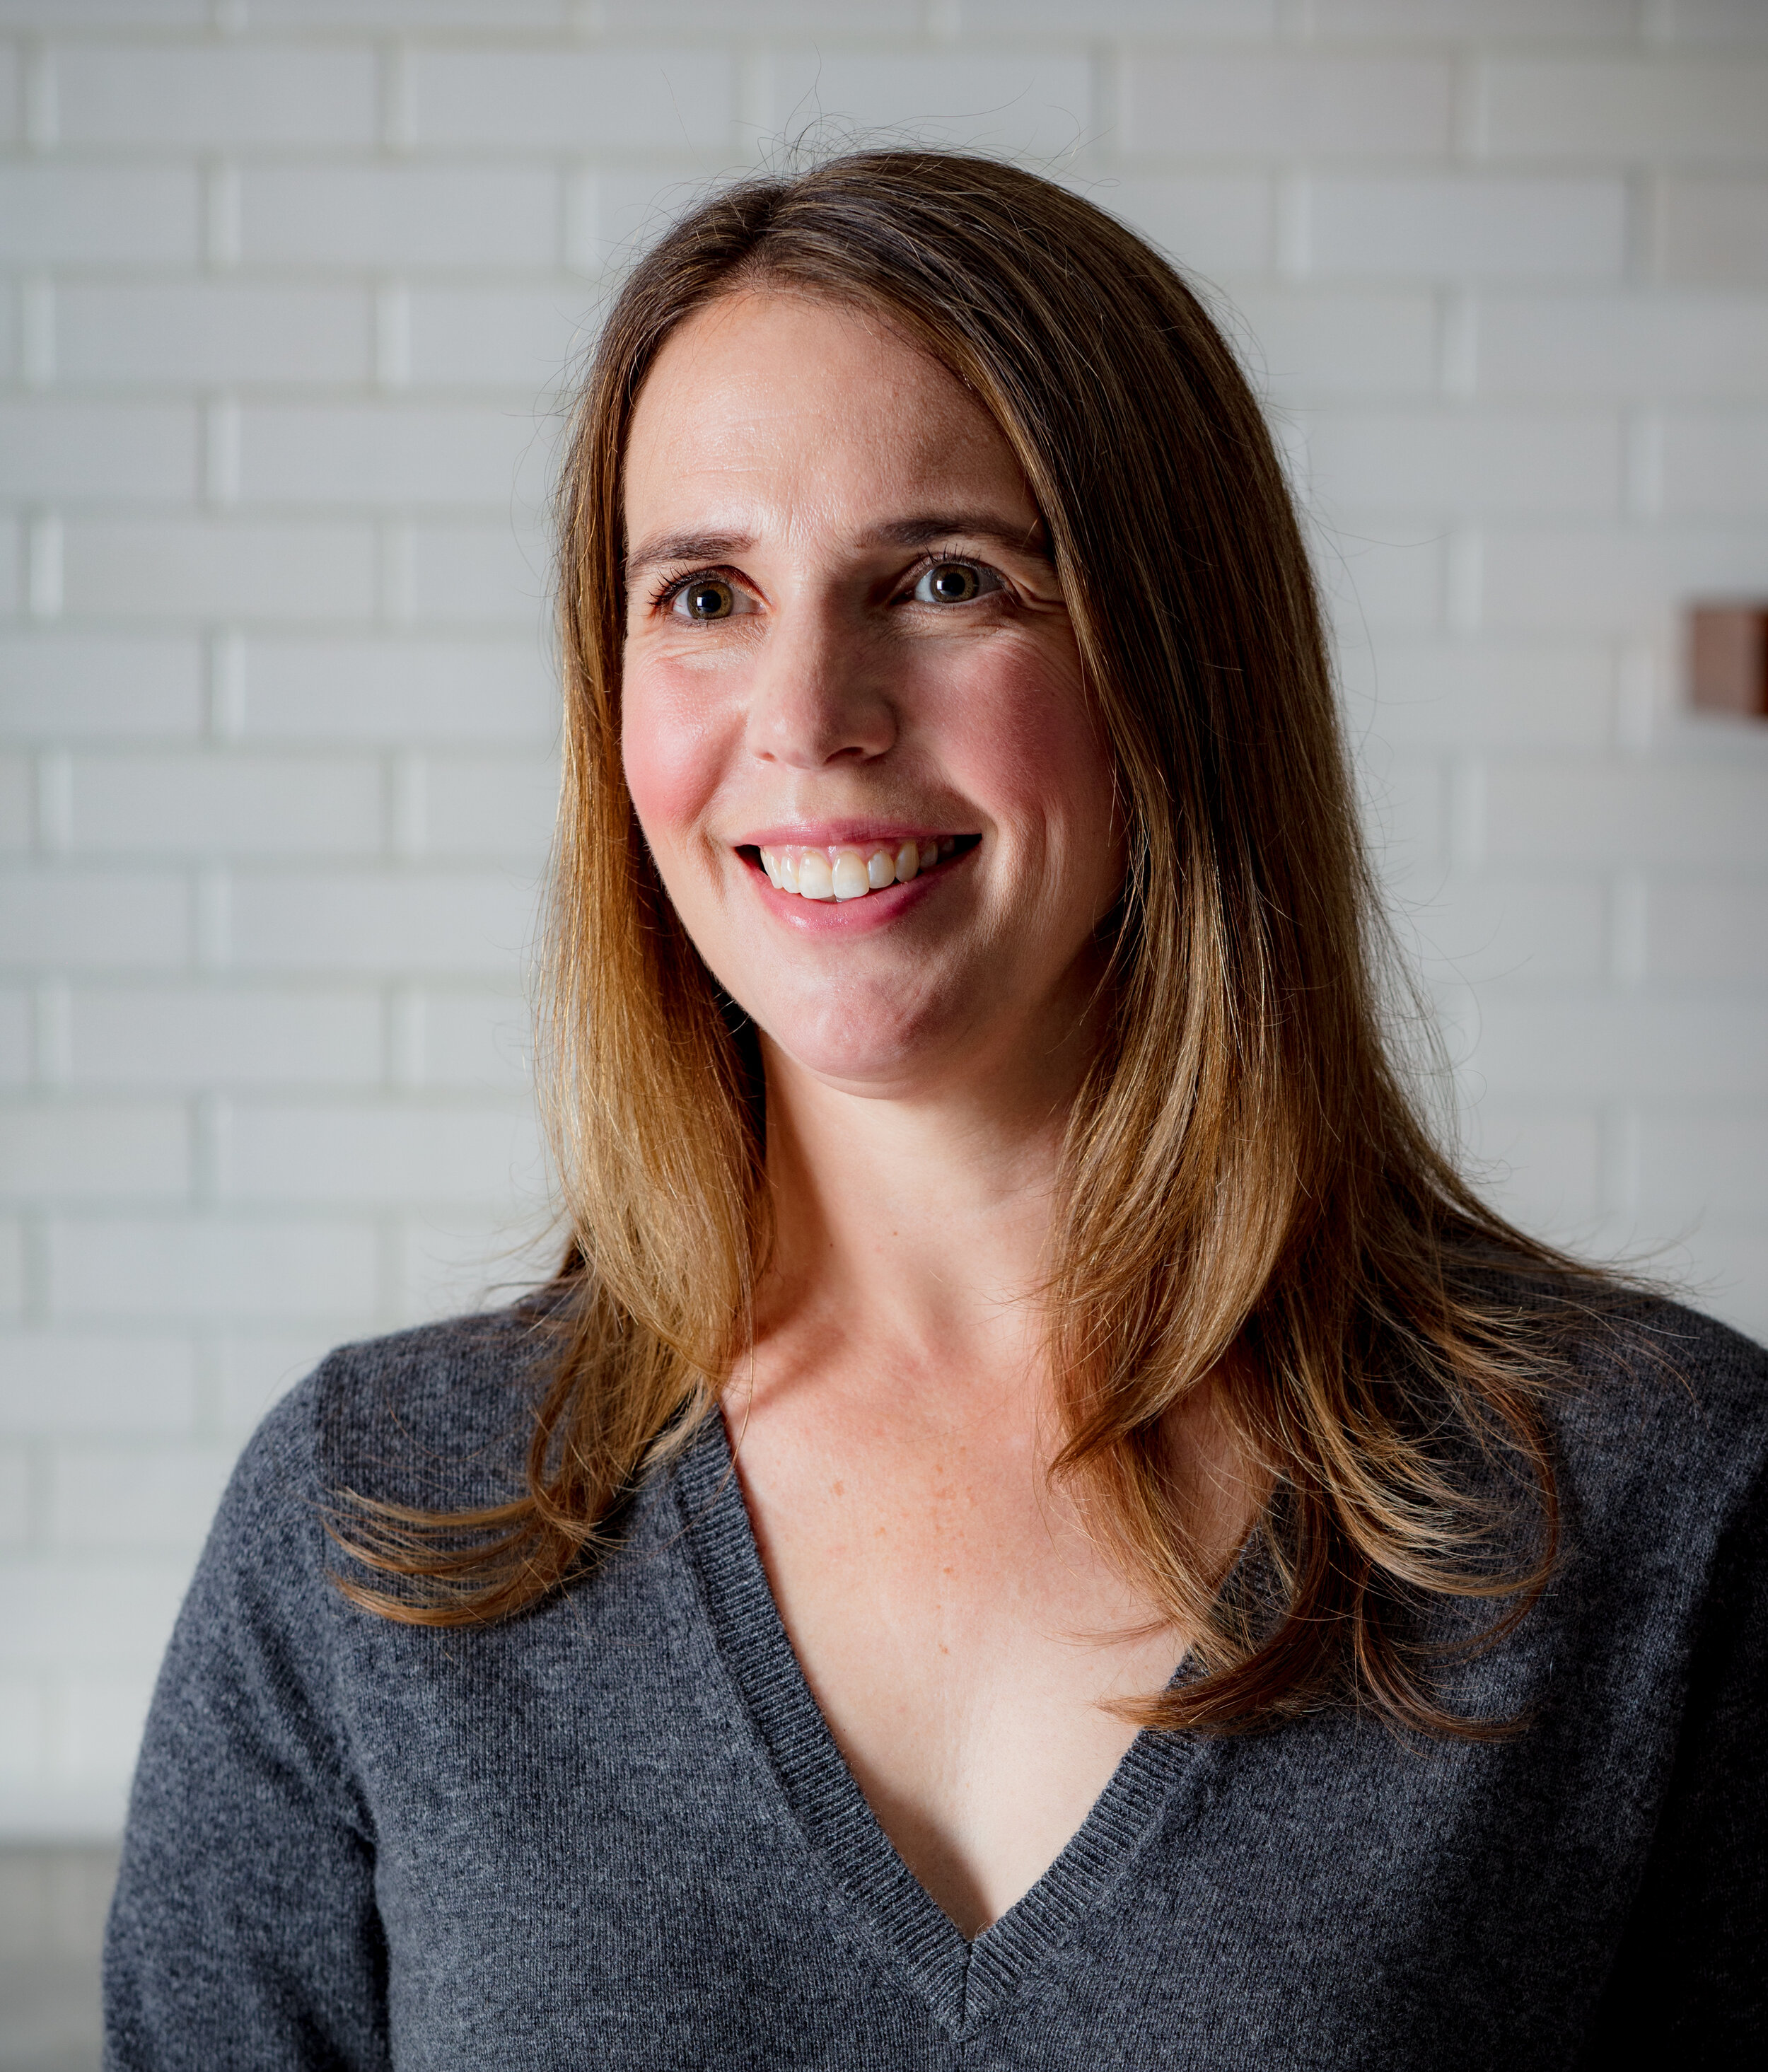 """Jennifer Tyler Lee, author of the cookbook """"Half the Sugar"""" talks to us about how to reduce sugar in your cooking without losing the foods or flavors you love most 